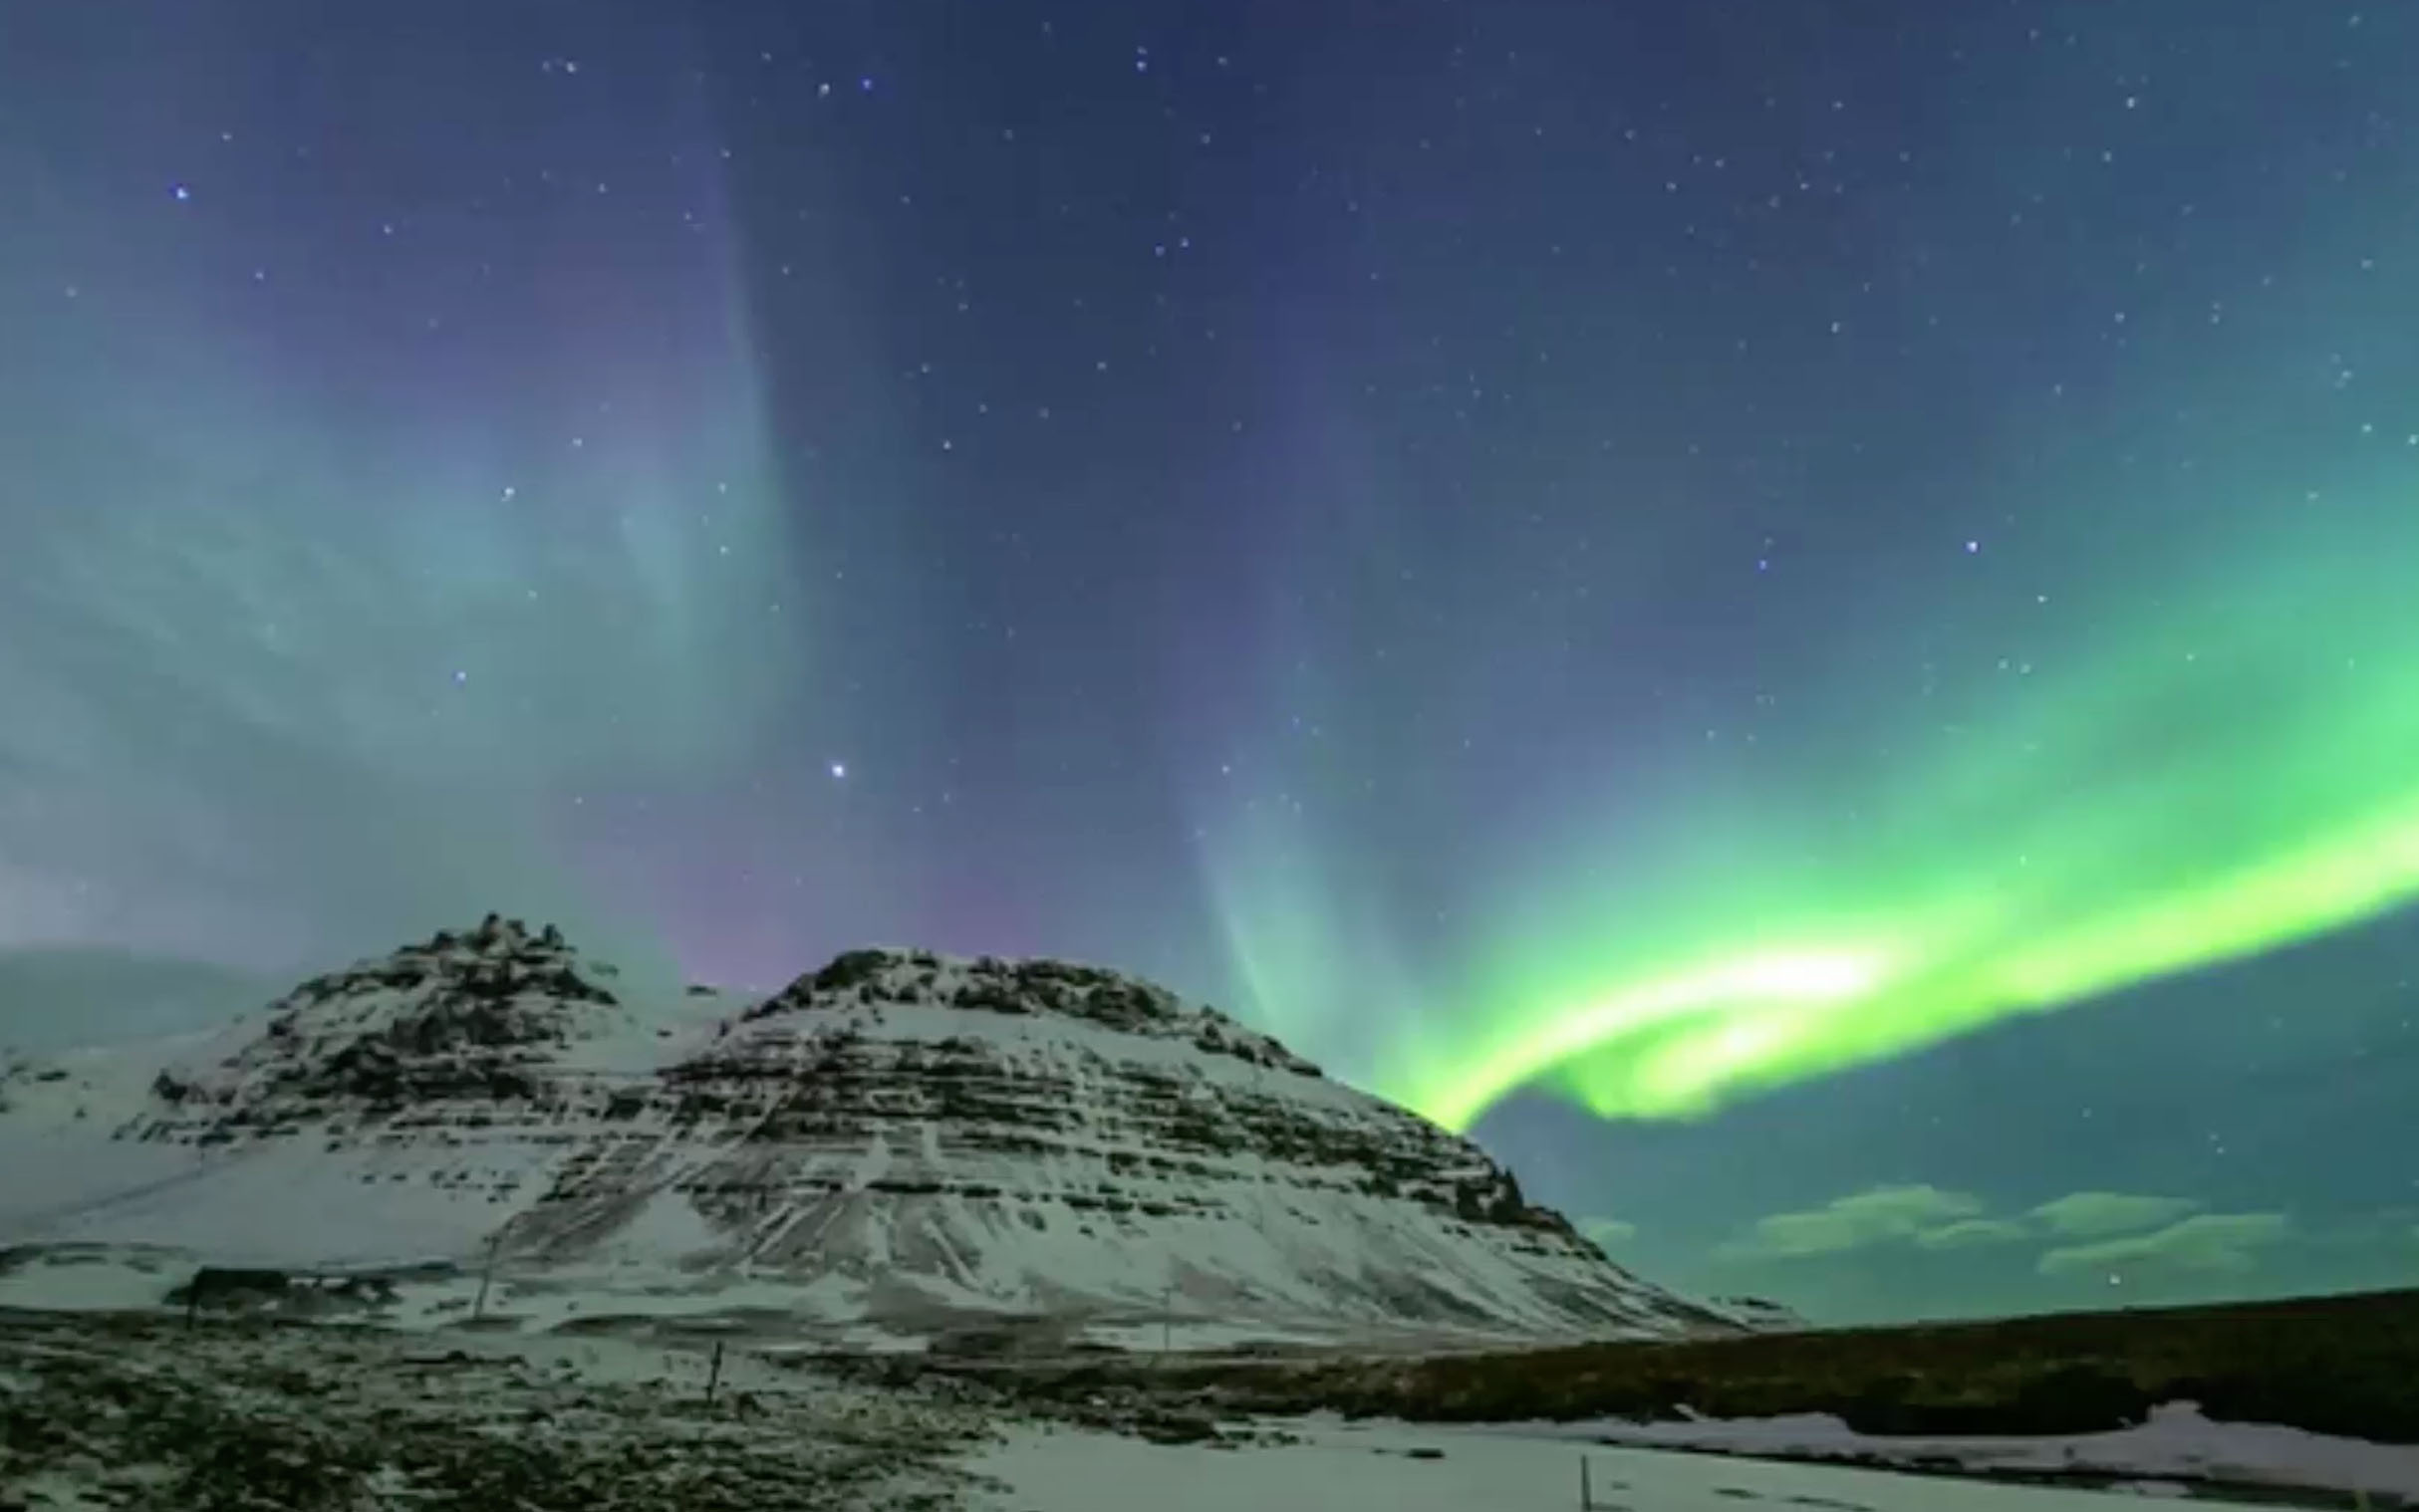 Northern lights put on dazzling celestial display as solar storm blasts Earth